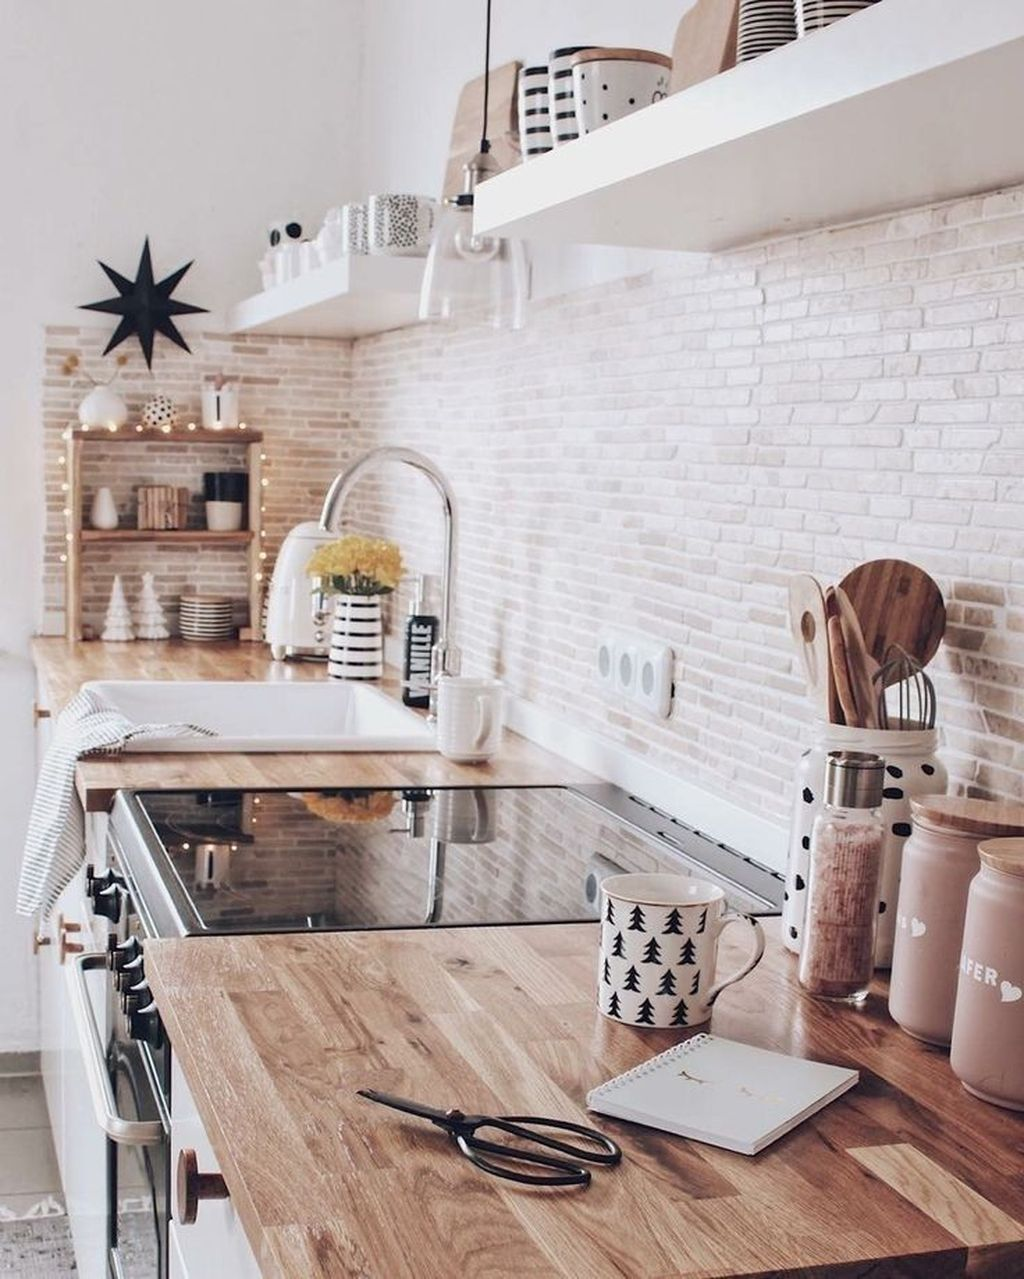 20 Modern Scandinavian Kitchen Design Ideas You Must See In 2020 Scandinavian Kitchen Design Scandinavian Style Home Kitchen Inspirations